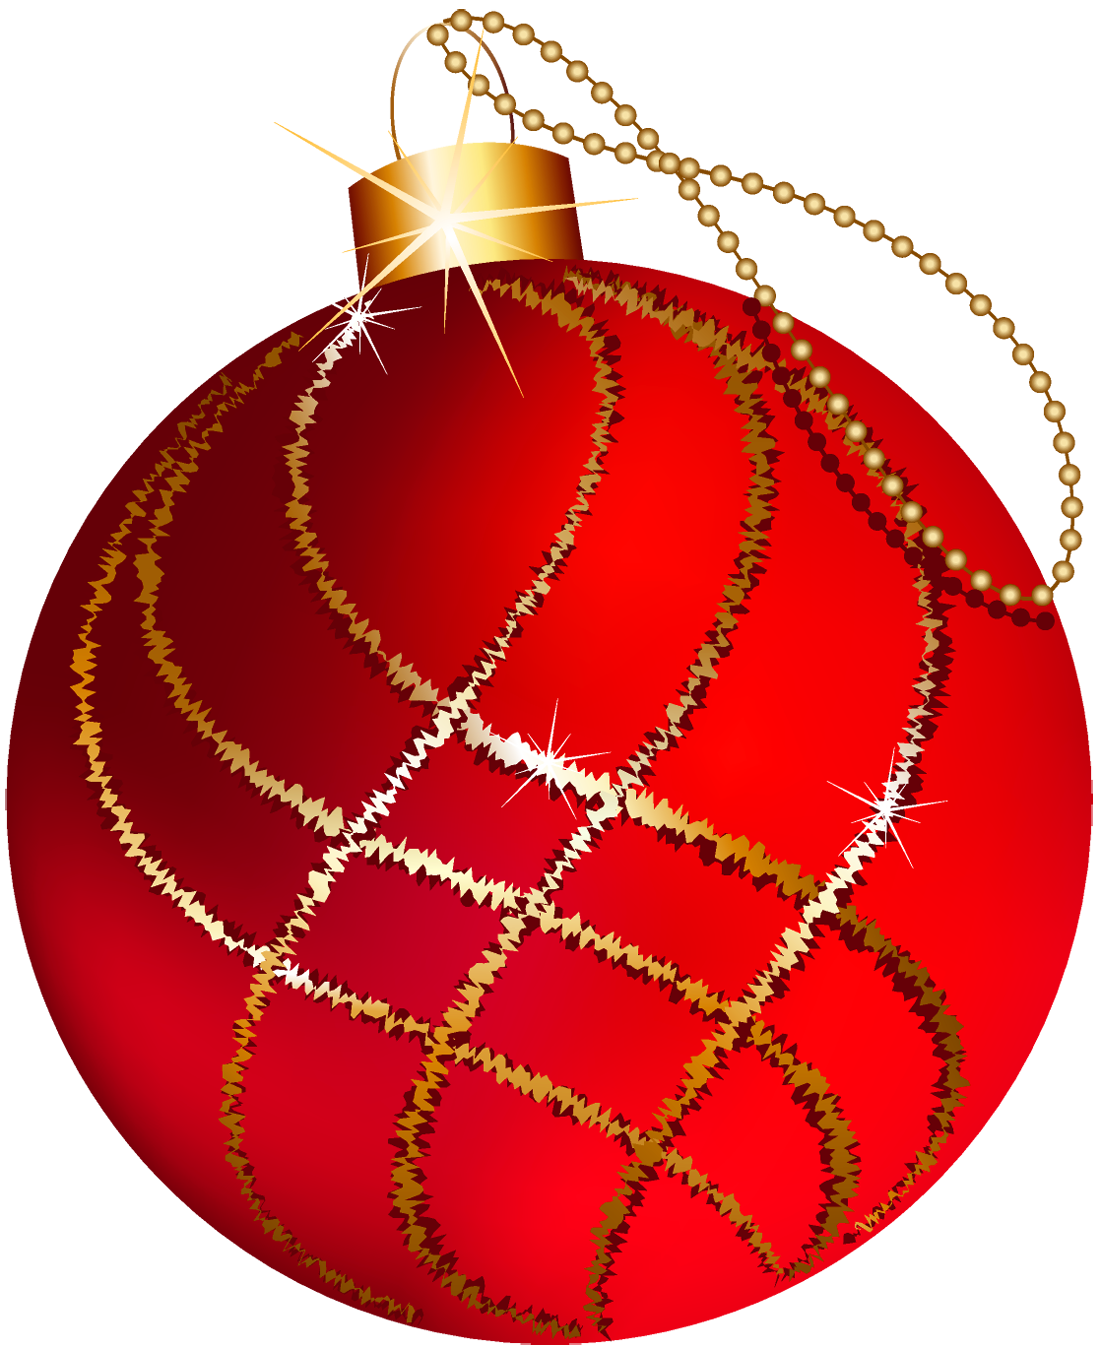 ornament download christmas ornaments transparent image png #37984